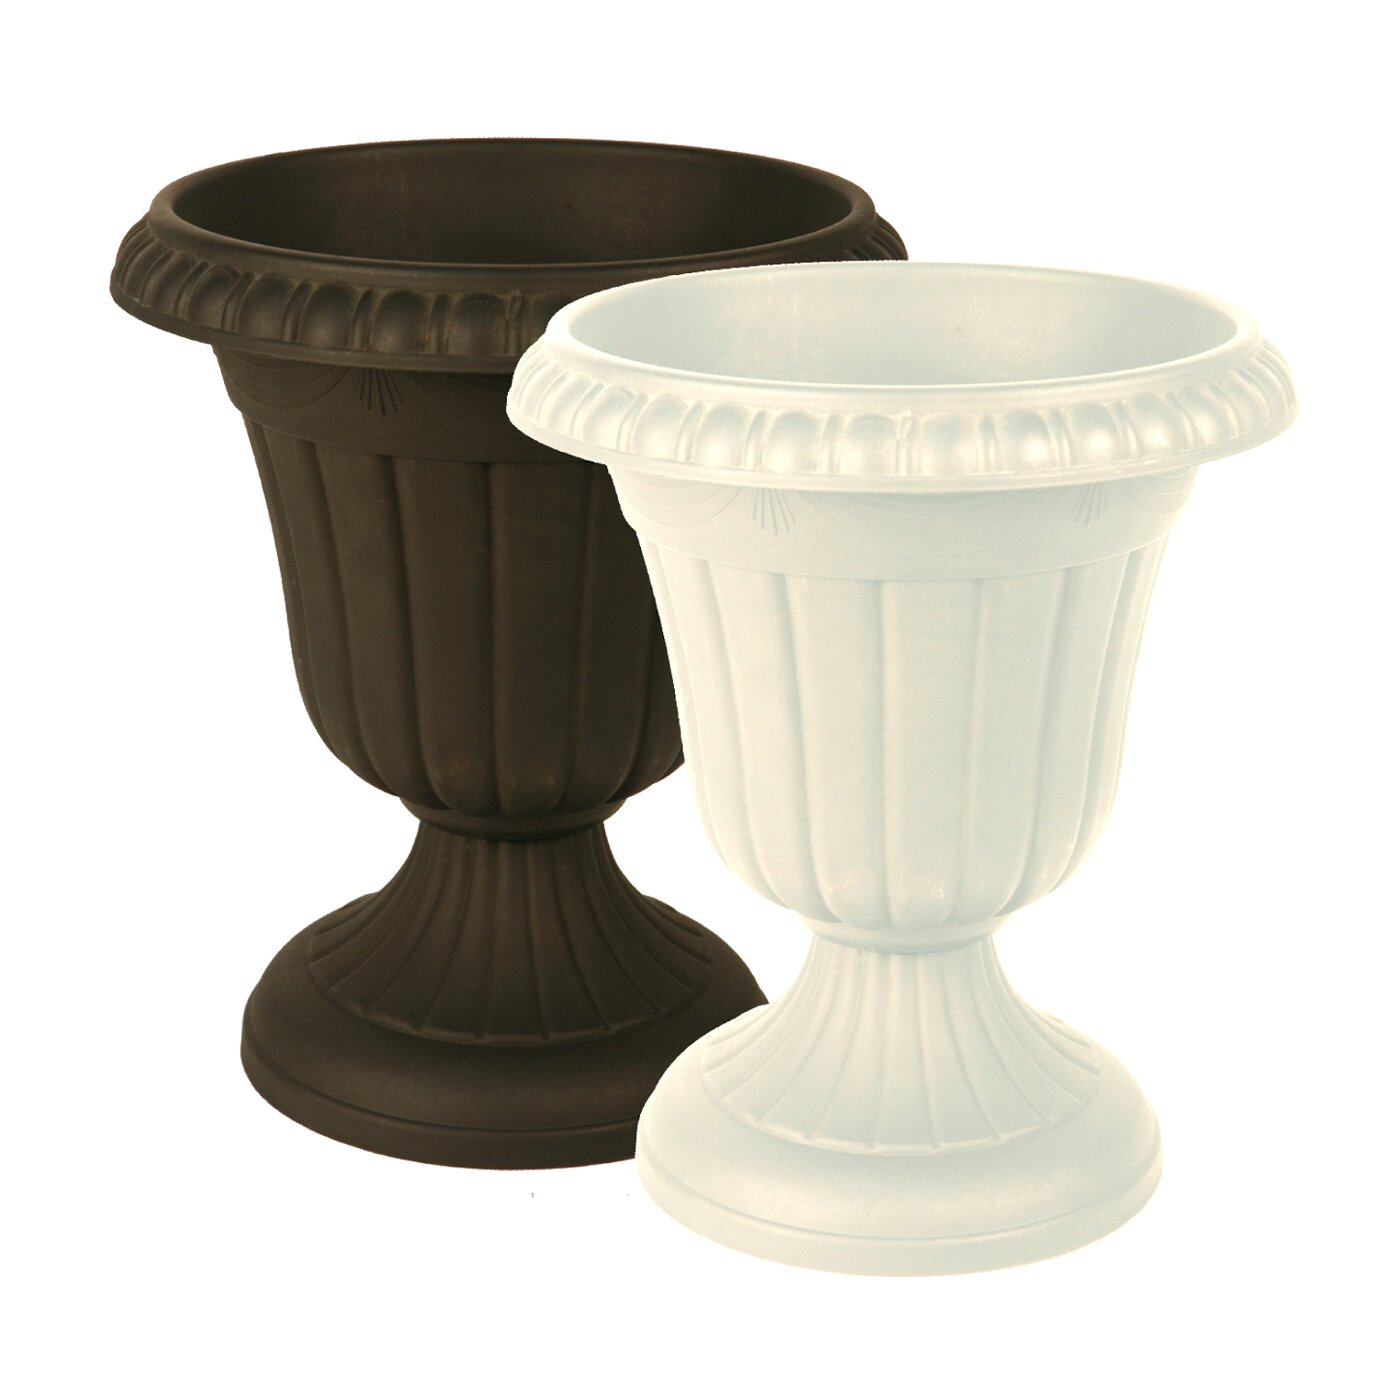 Arcadia Garden Products Round Urn Planter Amp Reviews Wayfair